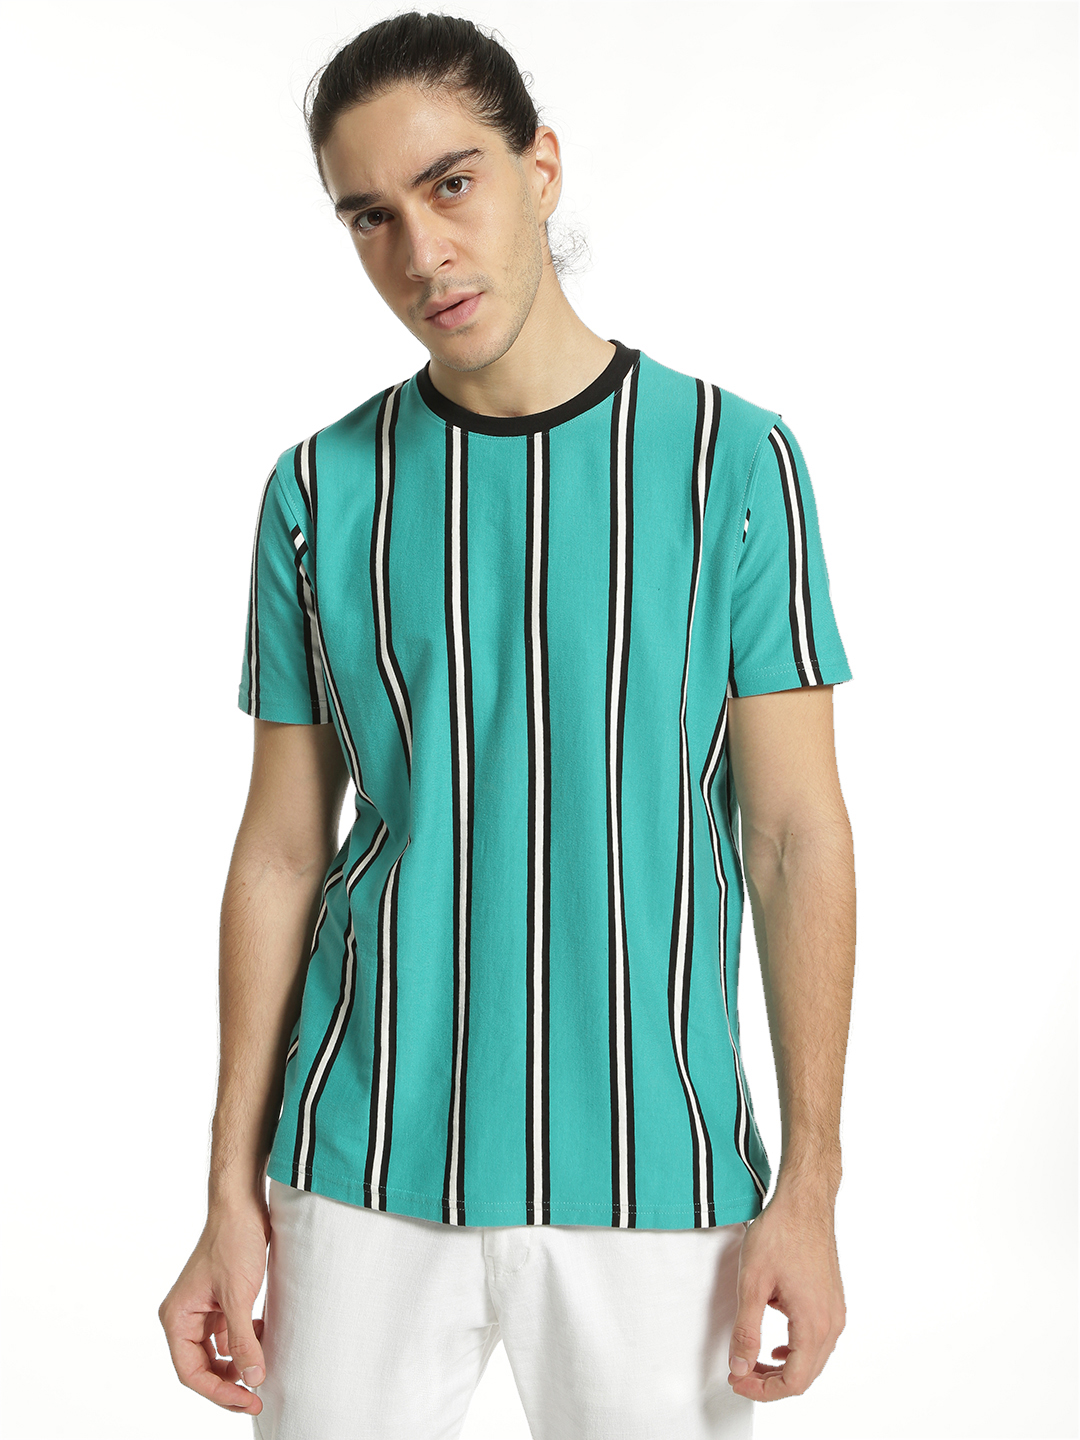 Garcon Blue Yarn Dyed Vertical Stripe T-Shirt 1